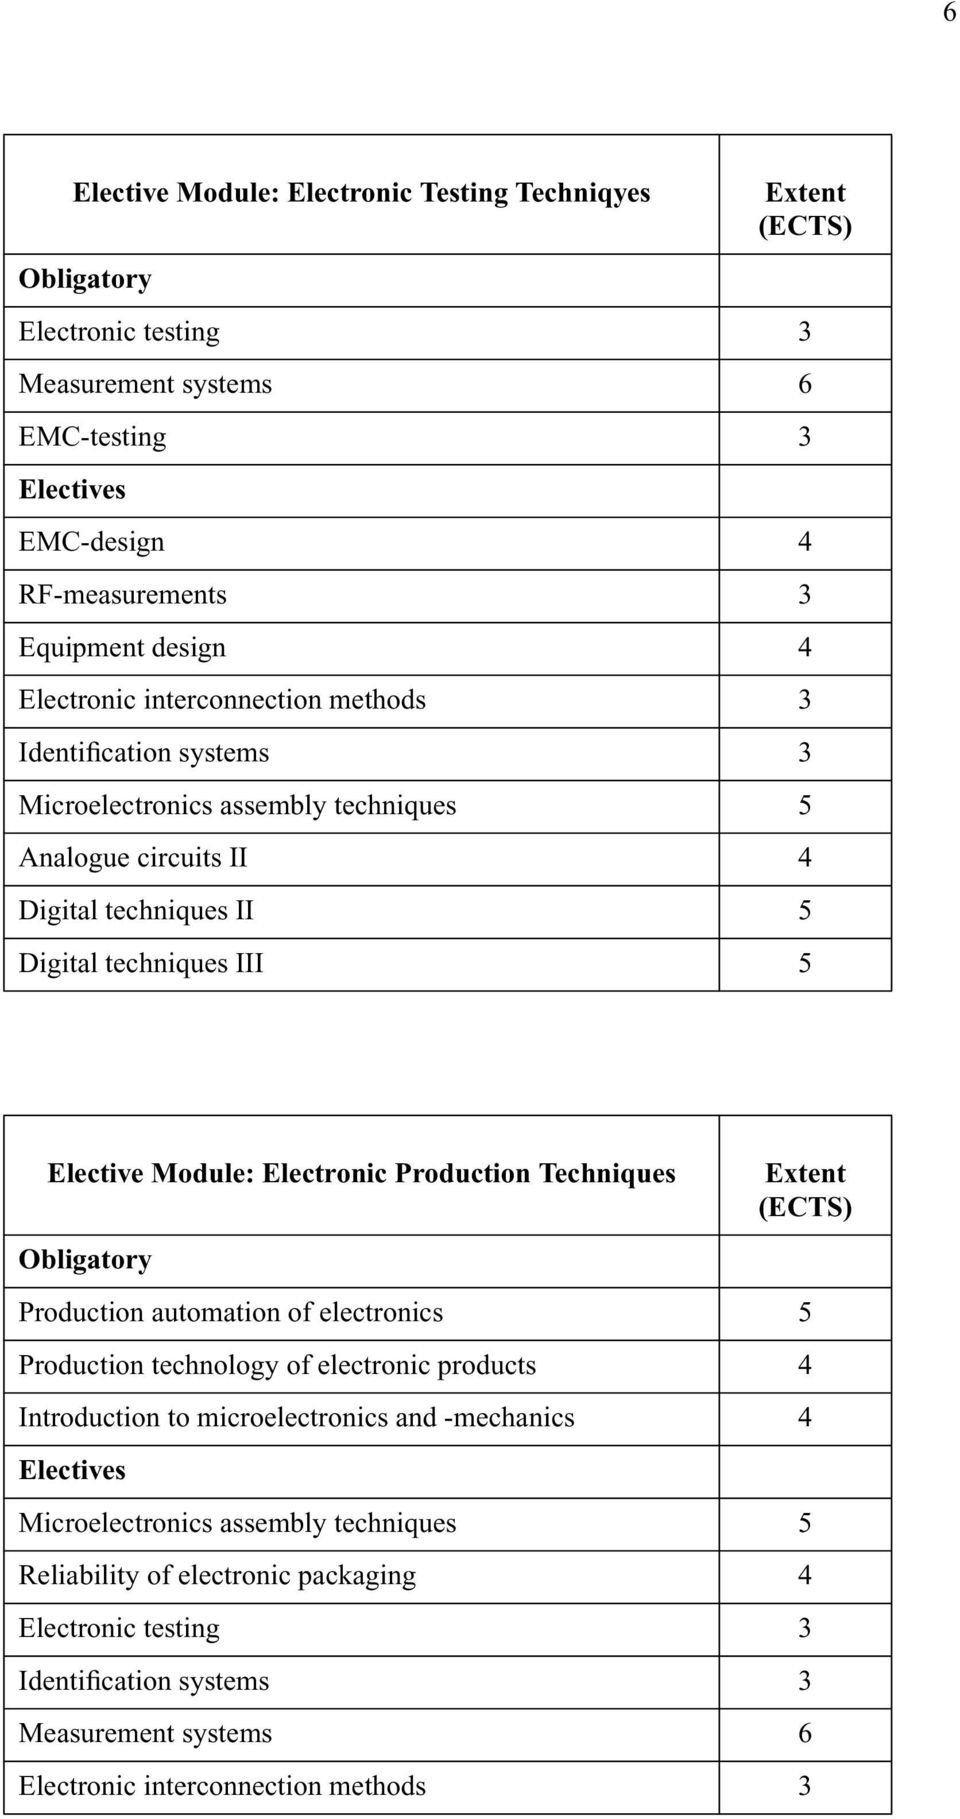 Module: Electronic Production Techniques Production automation of electronics 5 Production technology of electronic products 4 Introduction to microelectronics and